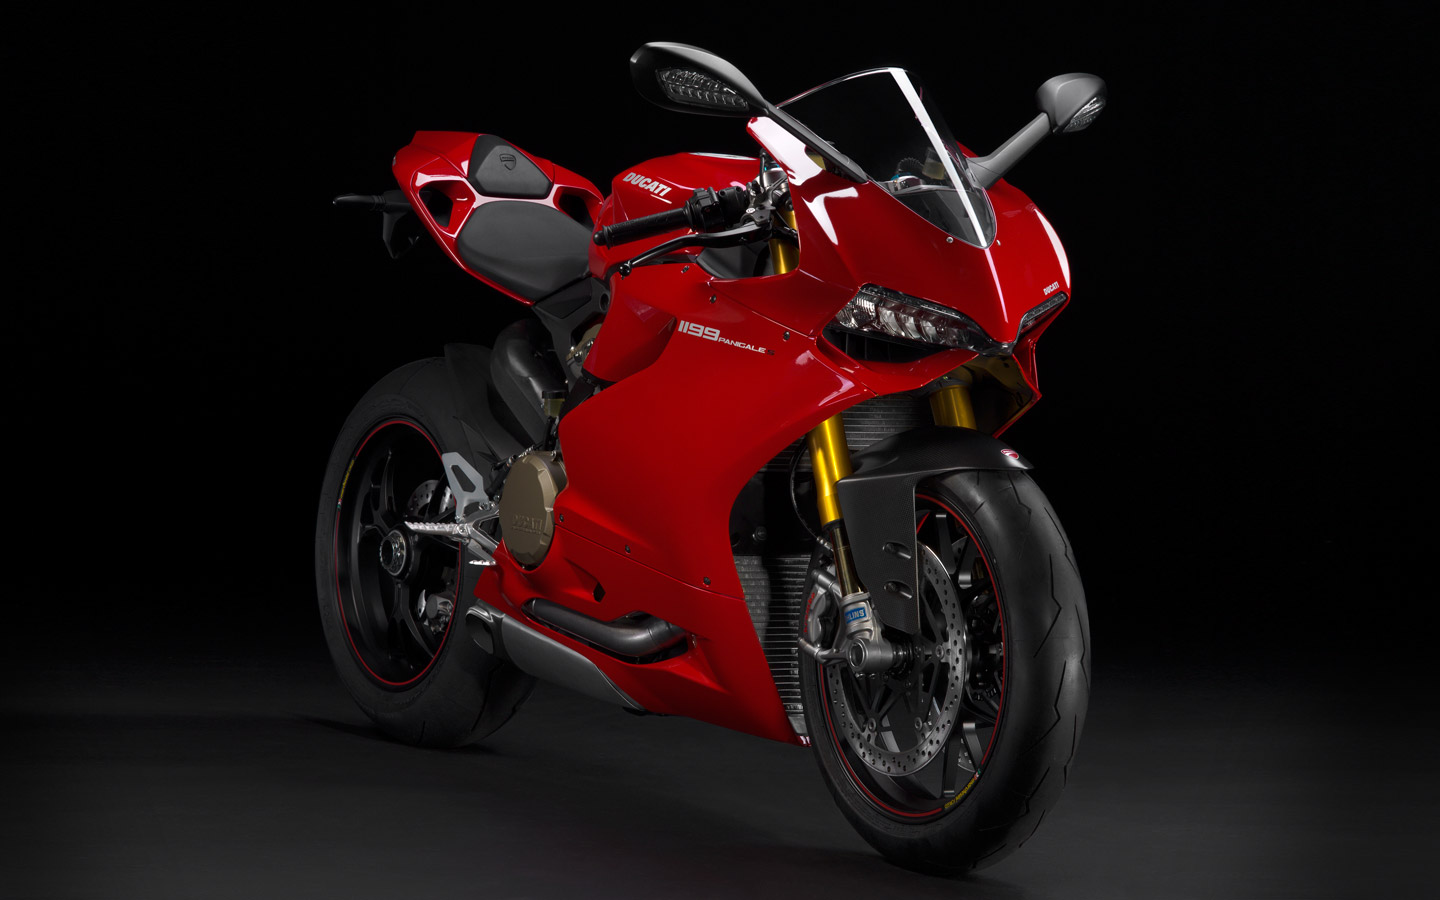 cars and motorcycles the 2012 ducati 1199 panigale. Black Bedroom Furniture Sets. Home Design Ideas